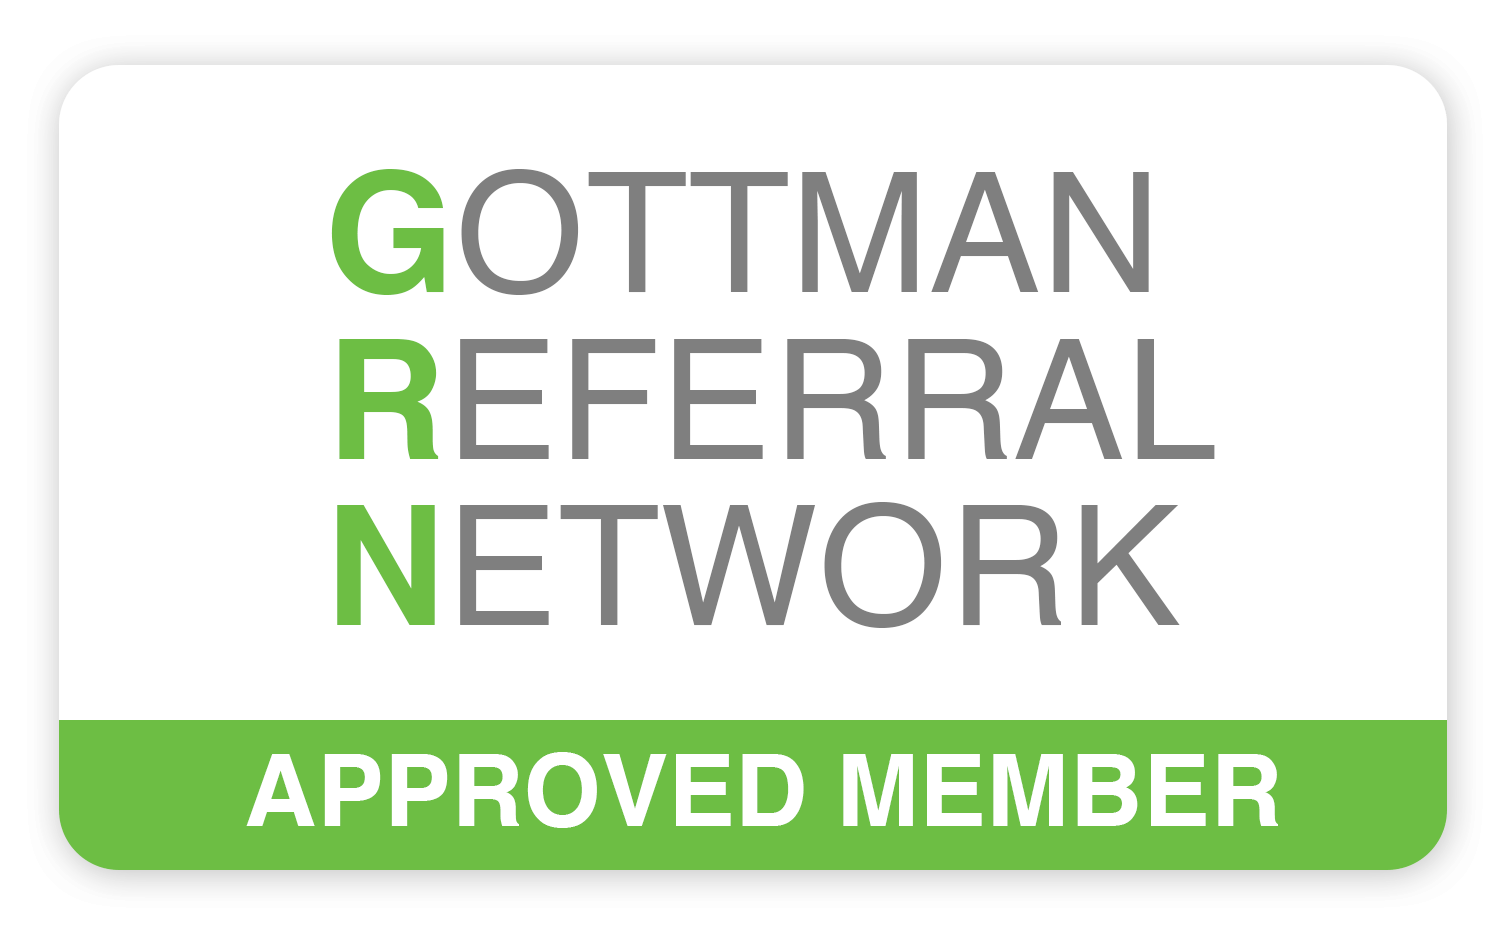 Robyn Mortimer Fowler's profile on the Gottman Referral Network